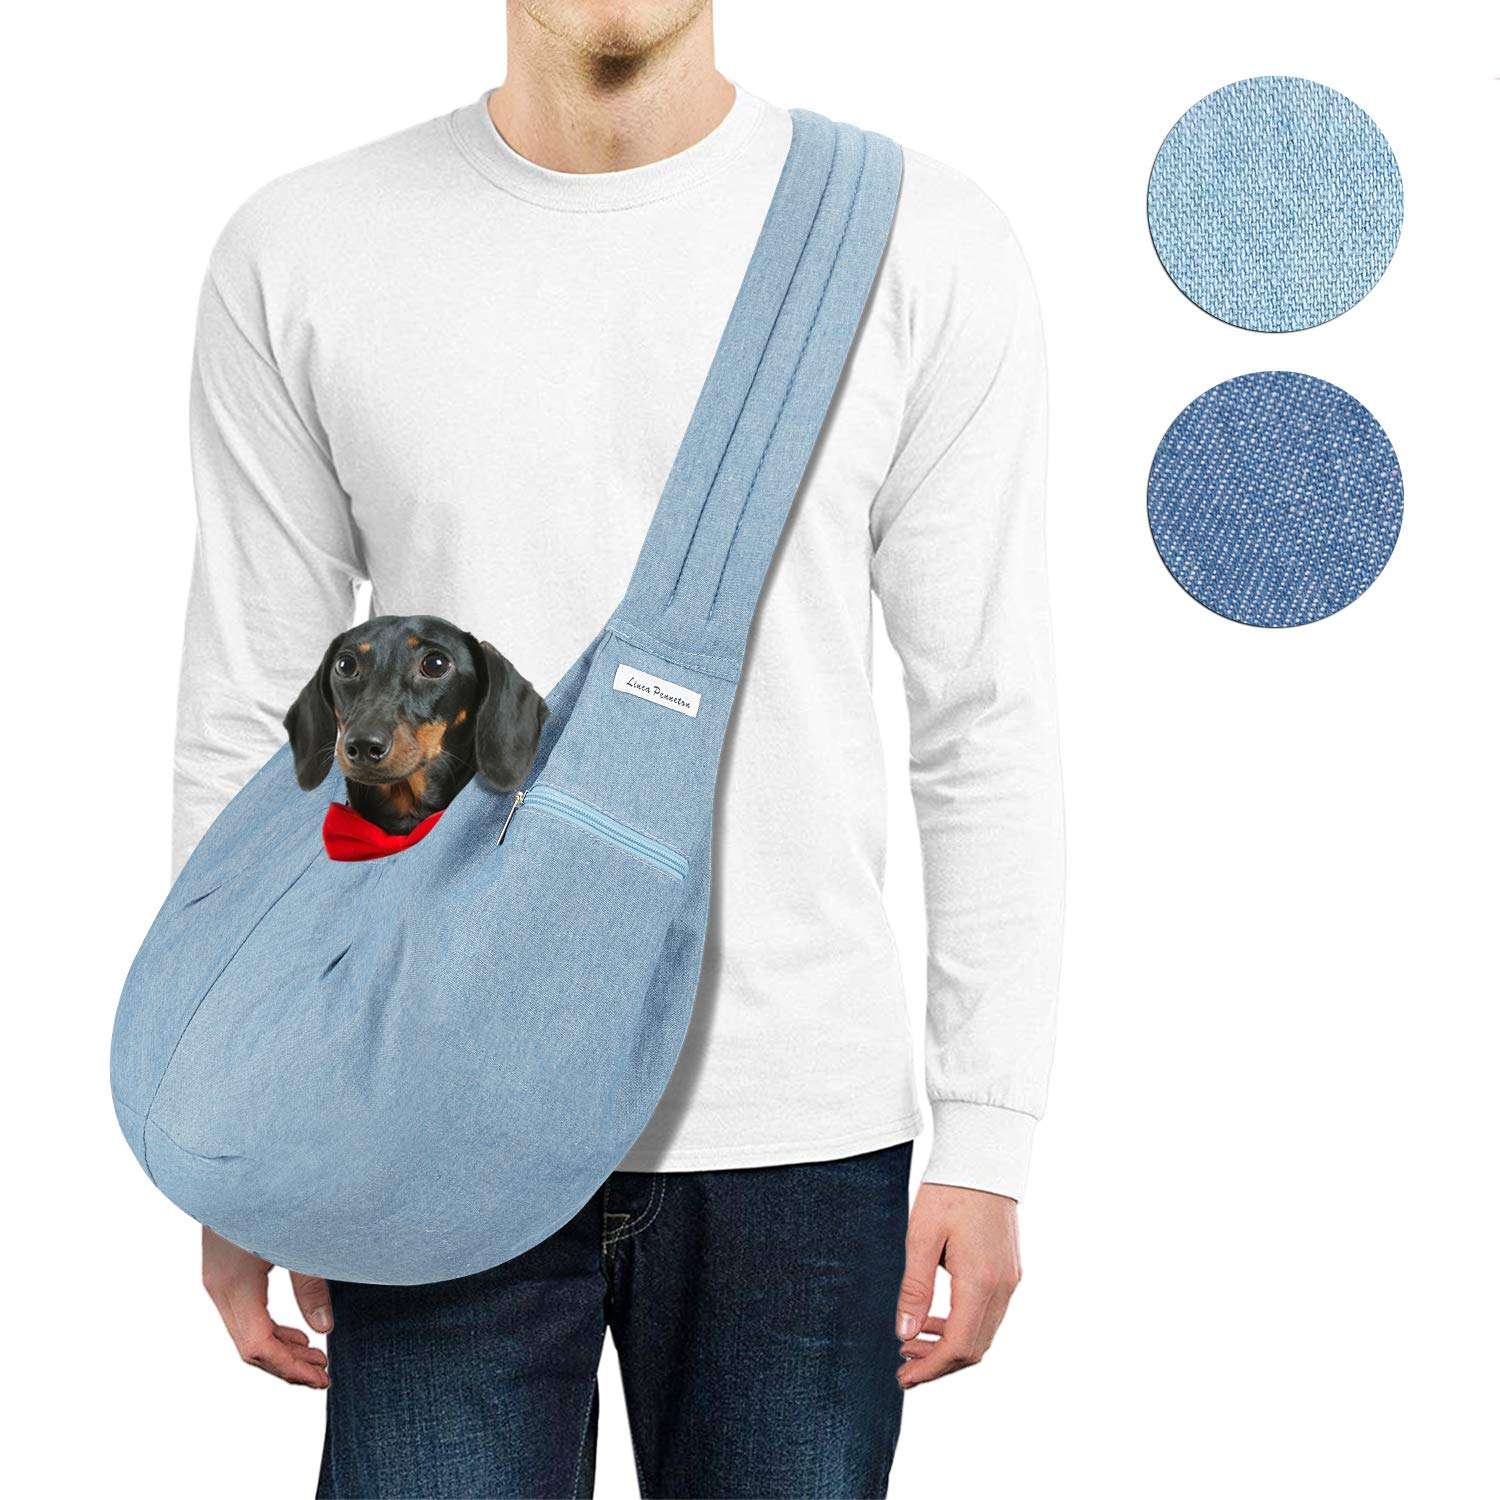 LincaPenneton Stylish Denim Pet Sling Dog Carrier Shoulder Bag Breathable Fabric Adjustable Padded Strap Small Cat Dog Puppy Travel Hands Free up to 11 lbs Light Blue by LincaPenneton